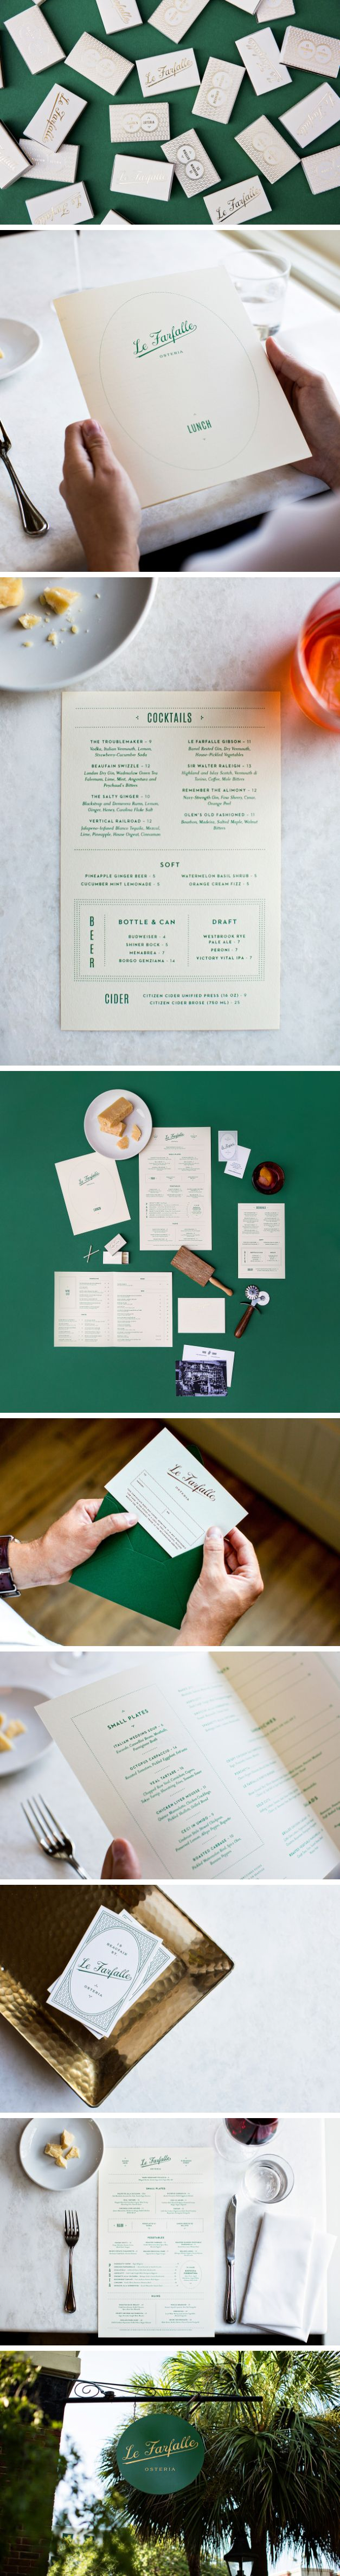 Brand Identity for Le Farfalle by One & Other